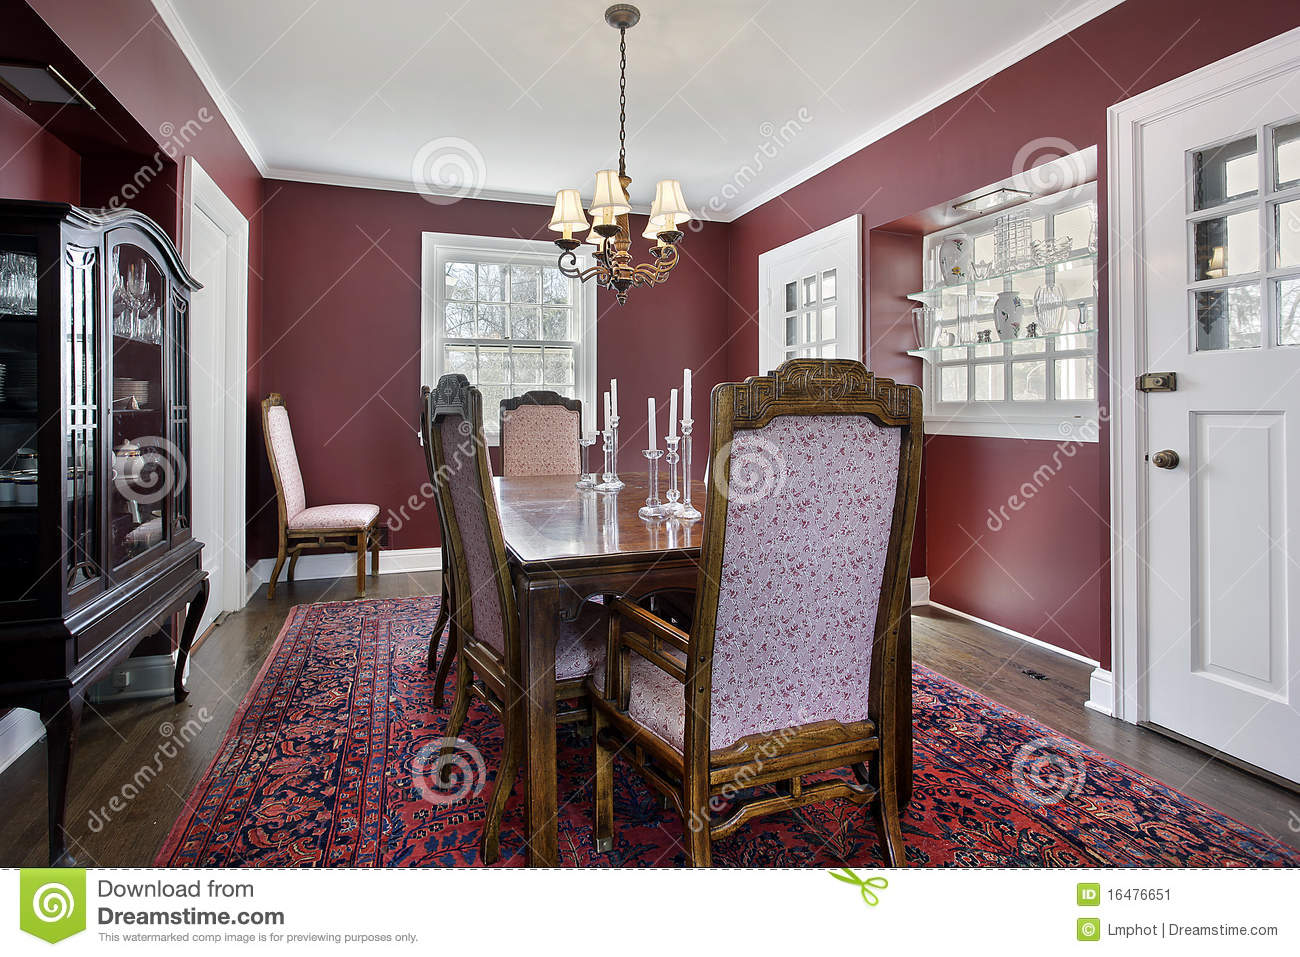 dining room with maroon walls stock image - image: 16476651